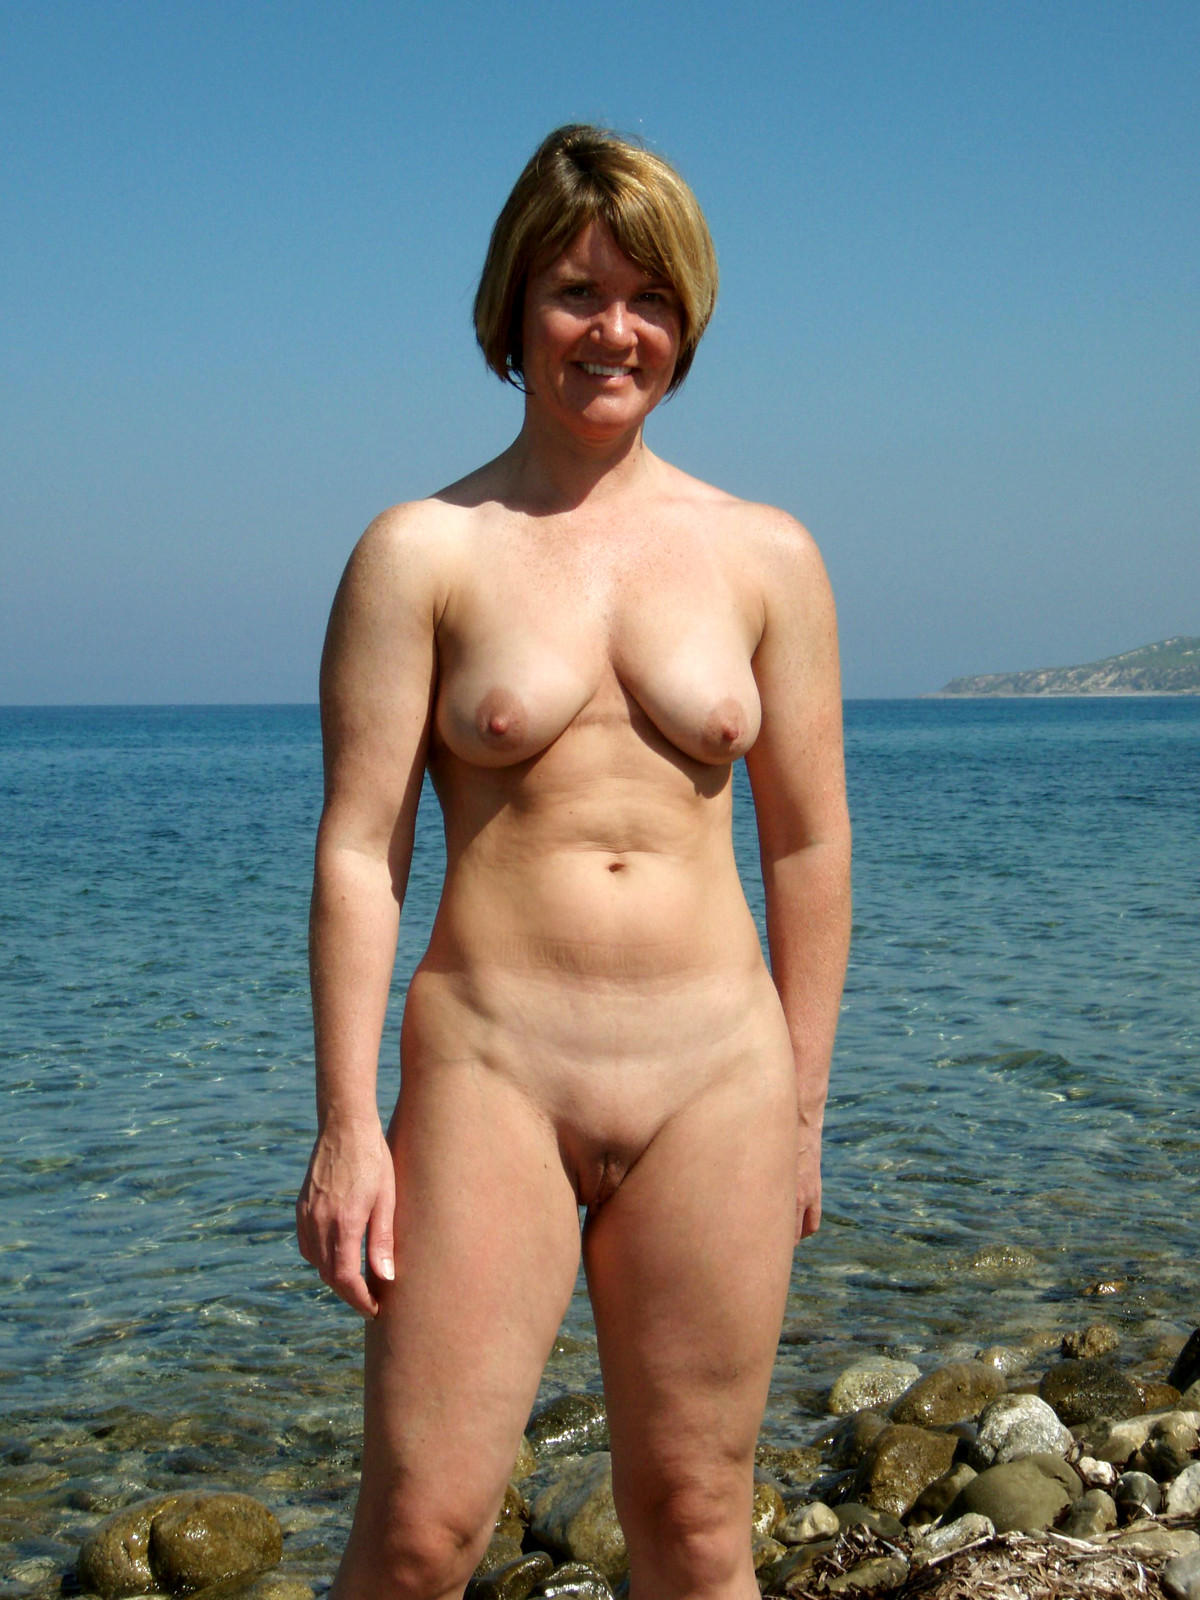 Think Nudist photo galler Amazing. Awesome